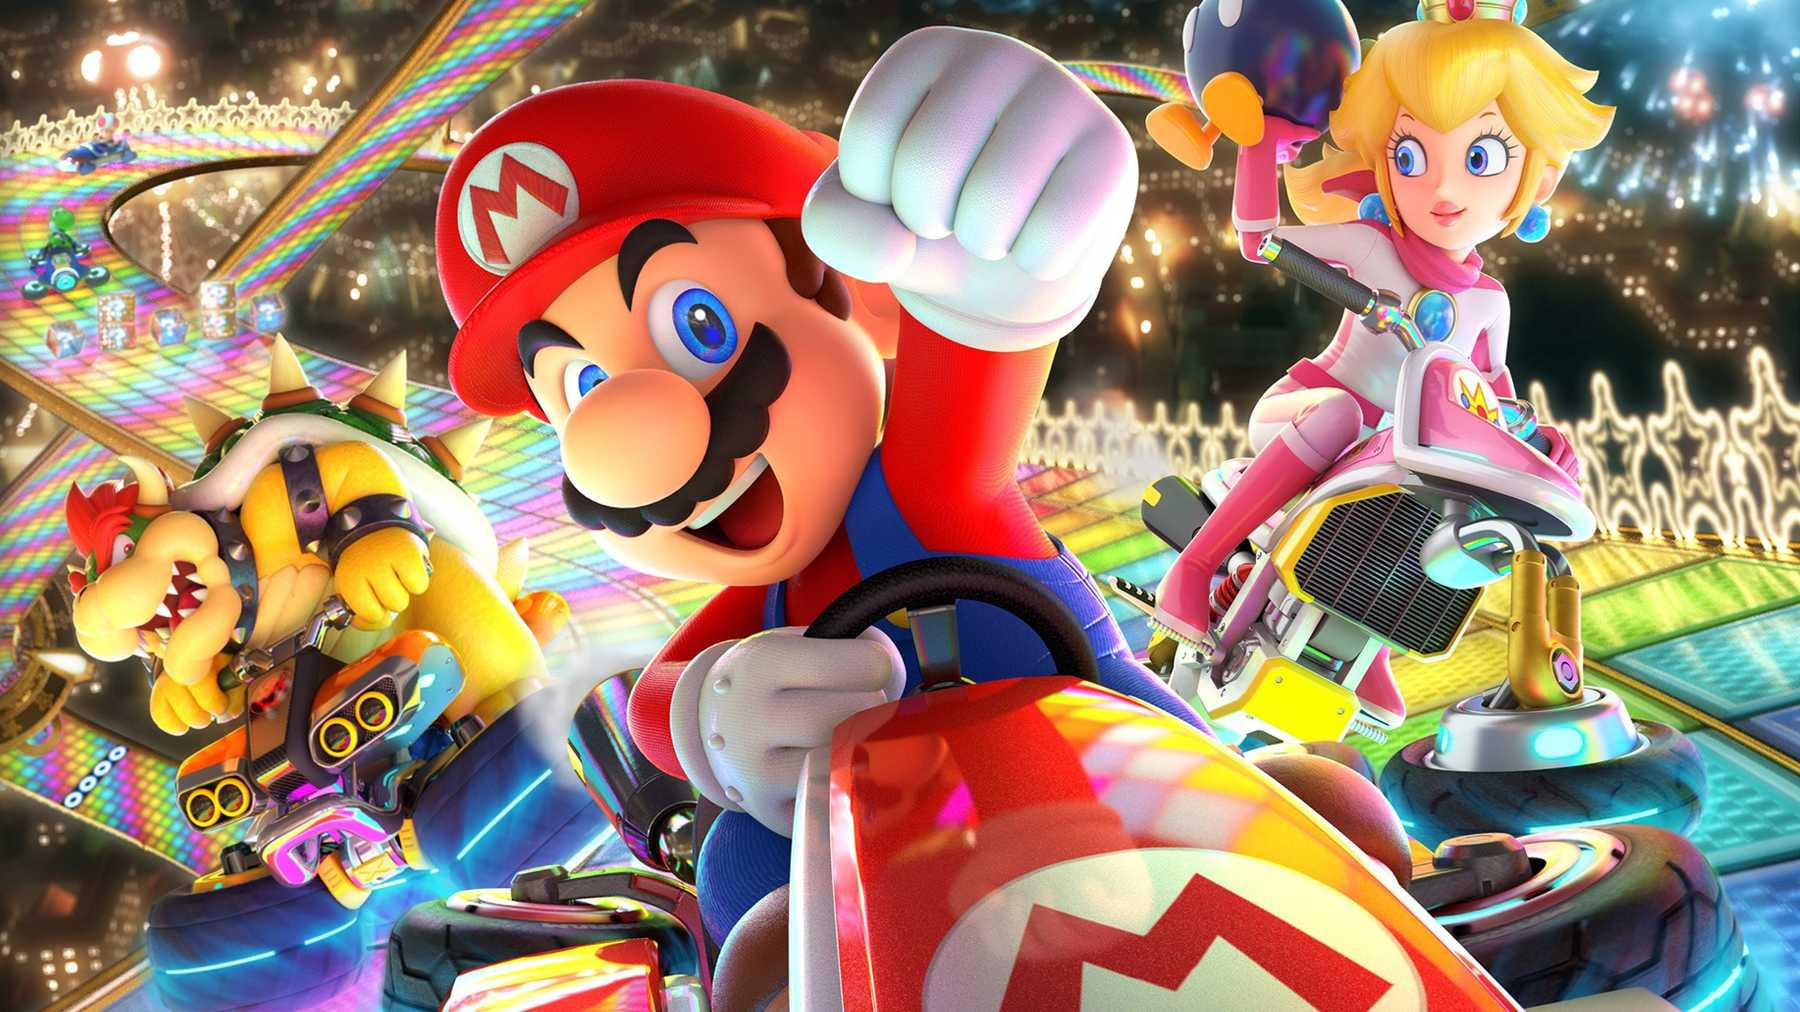 It S Been Three Years Since Mario Kart 8 Deluxe Was Released On